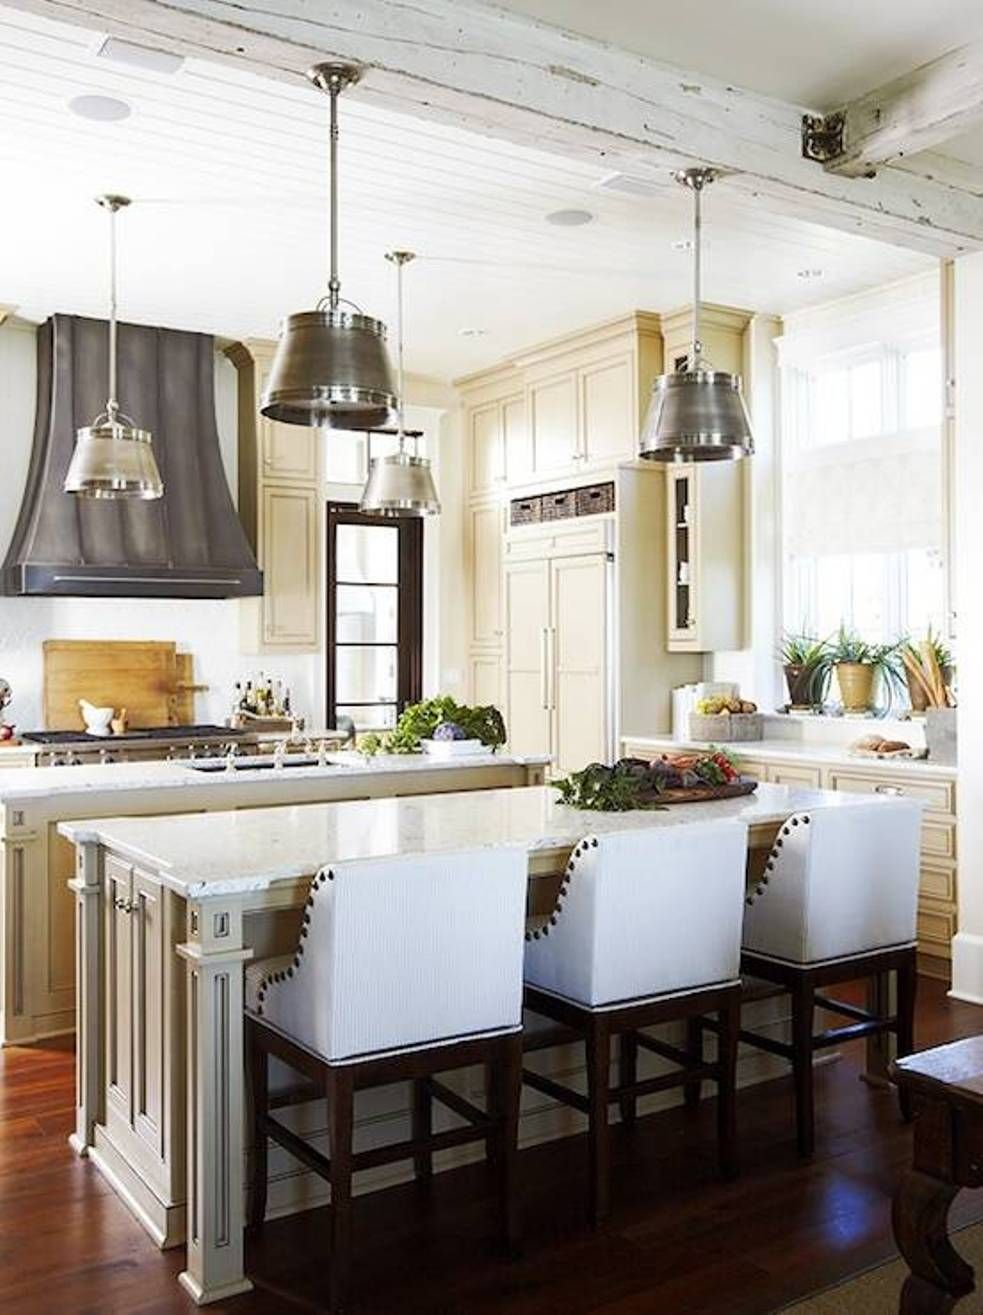 French Kitchen Design With Industrial Kitchen Pendants And Interesting French Kitchen Design Decorating Inspiration